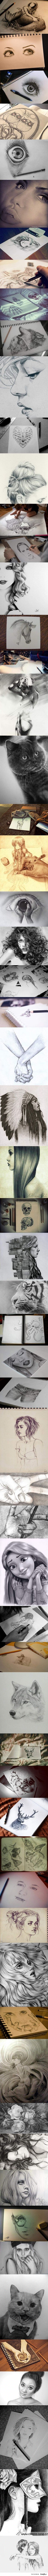 amazing! Beautiful drawings